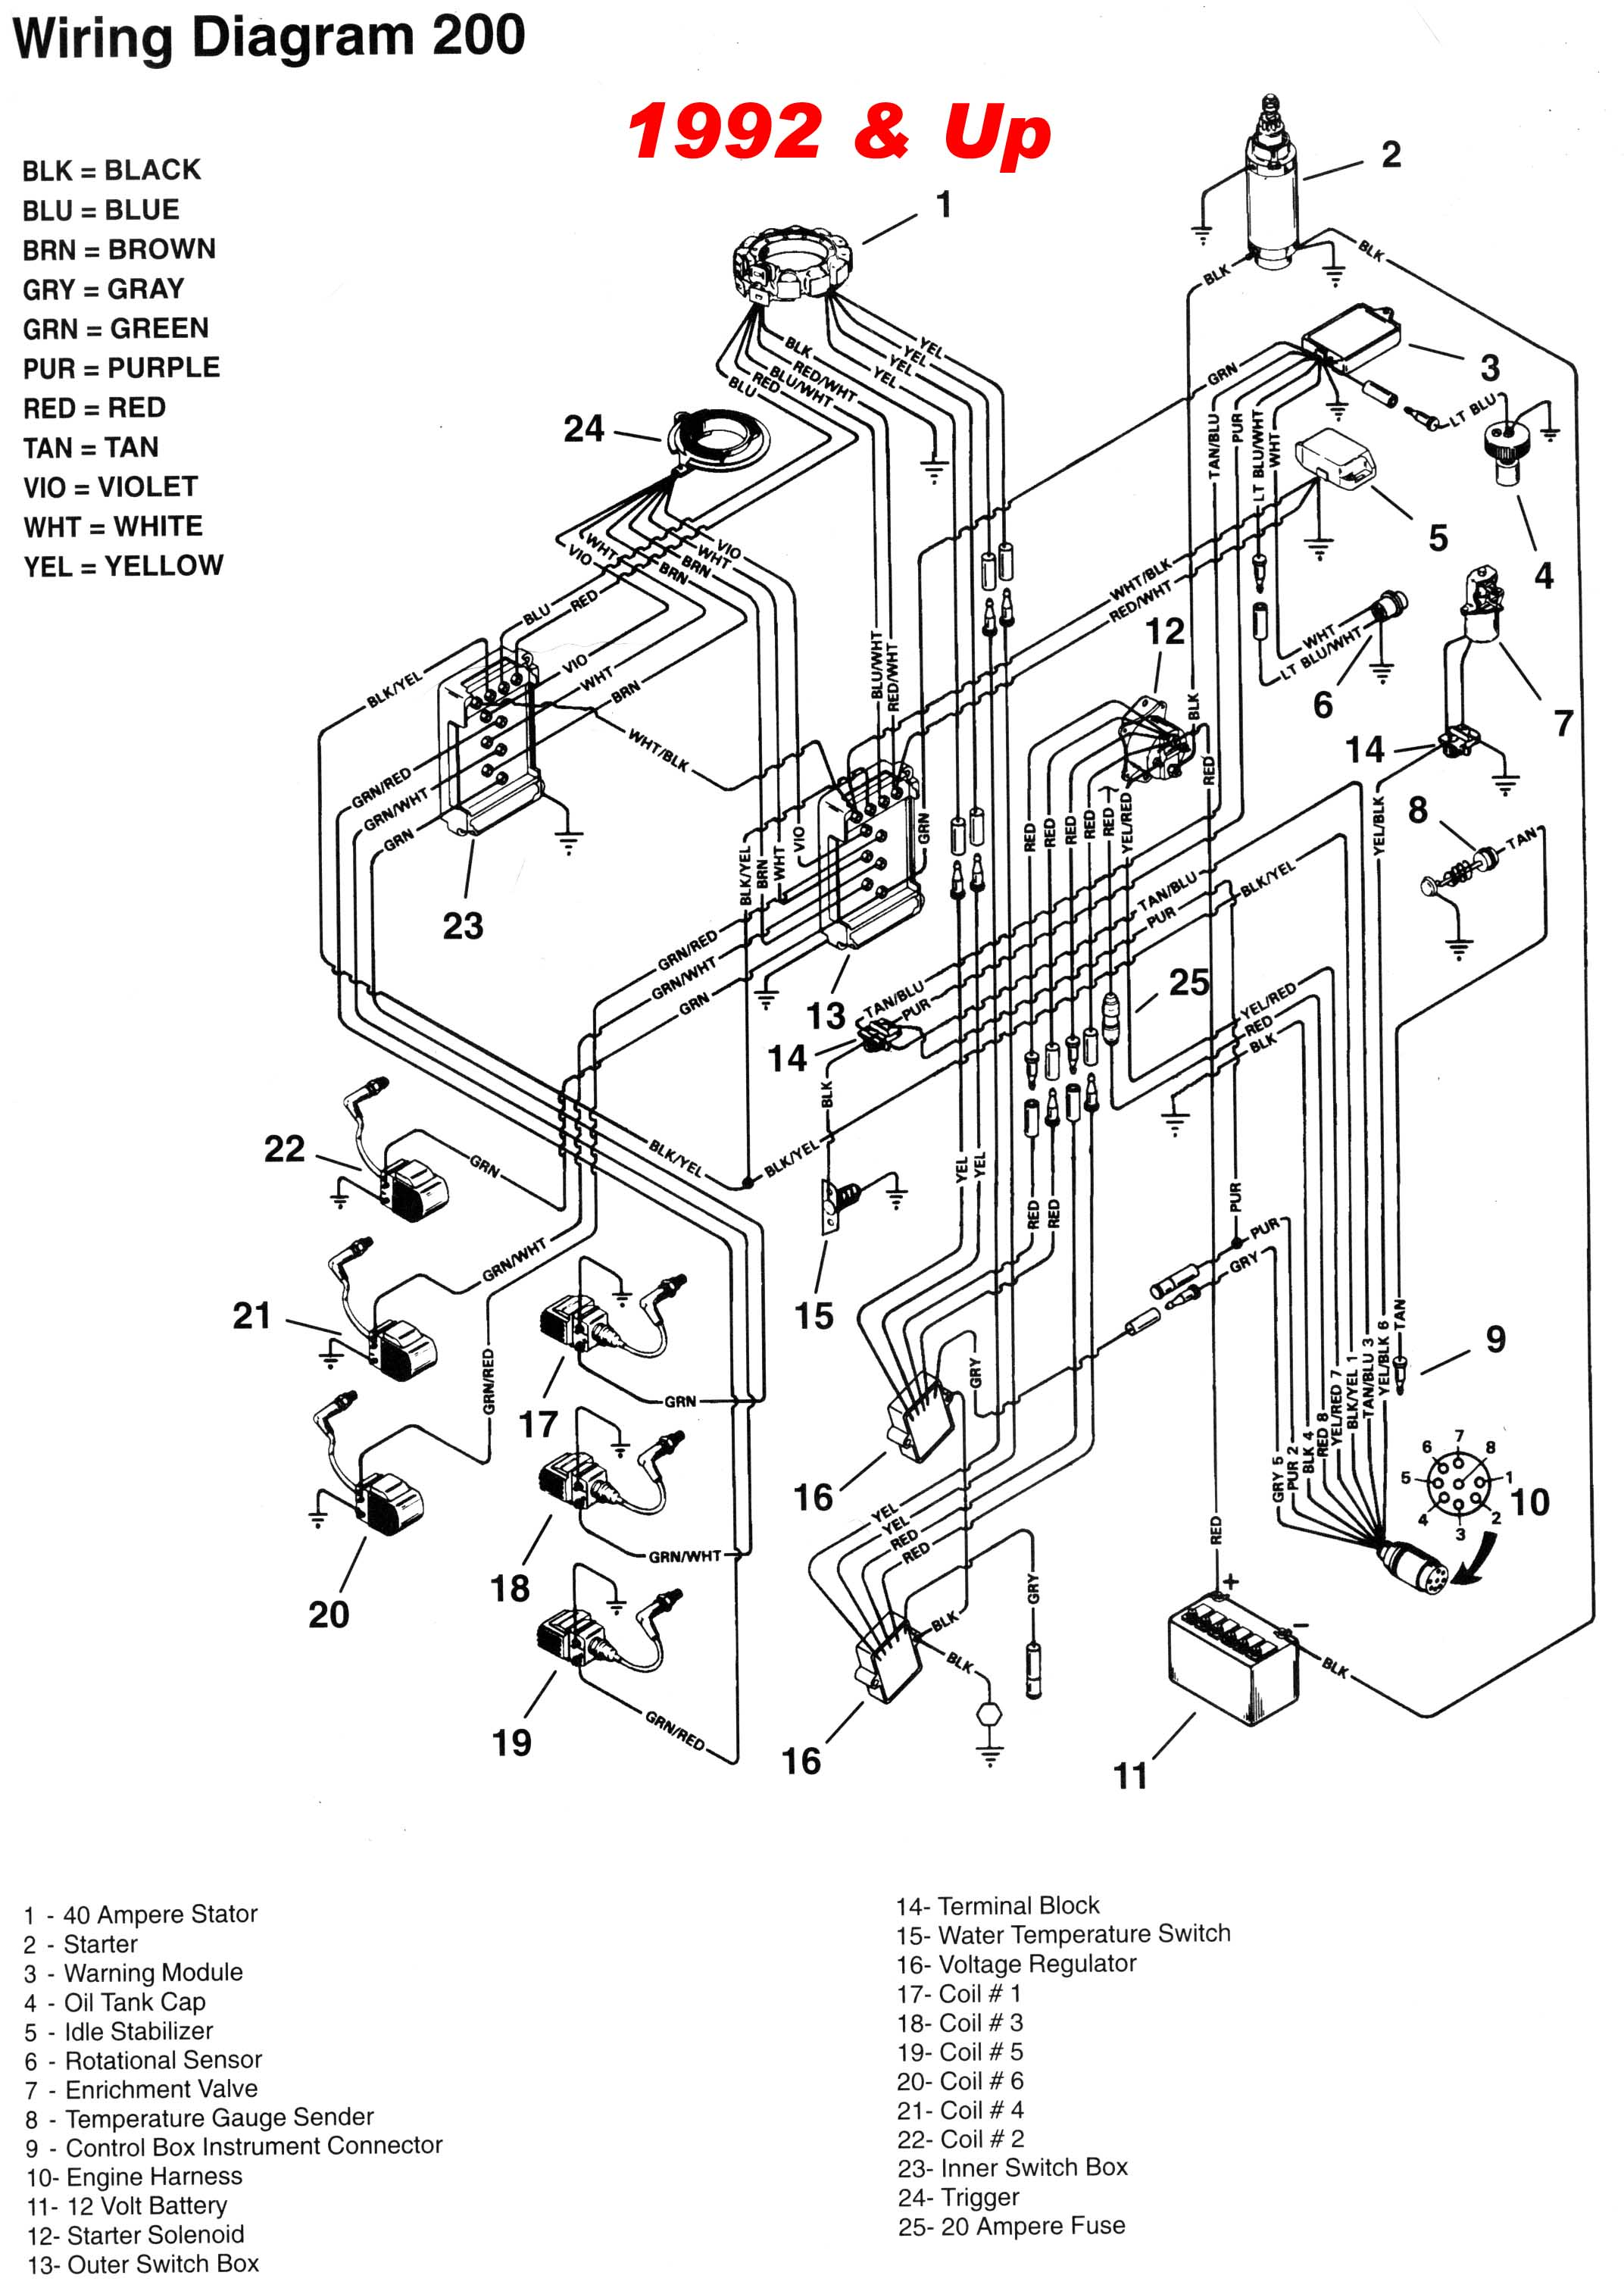 mercury_92up_200_wiring mercury optimax wiring diagram mercury verado wiring diagram mercury outboard external wiring harness at reclaimingppi.co